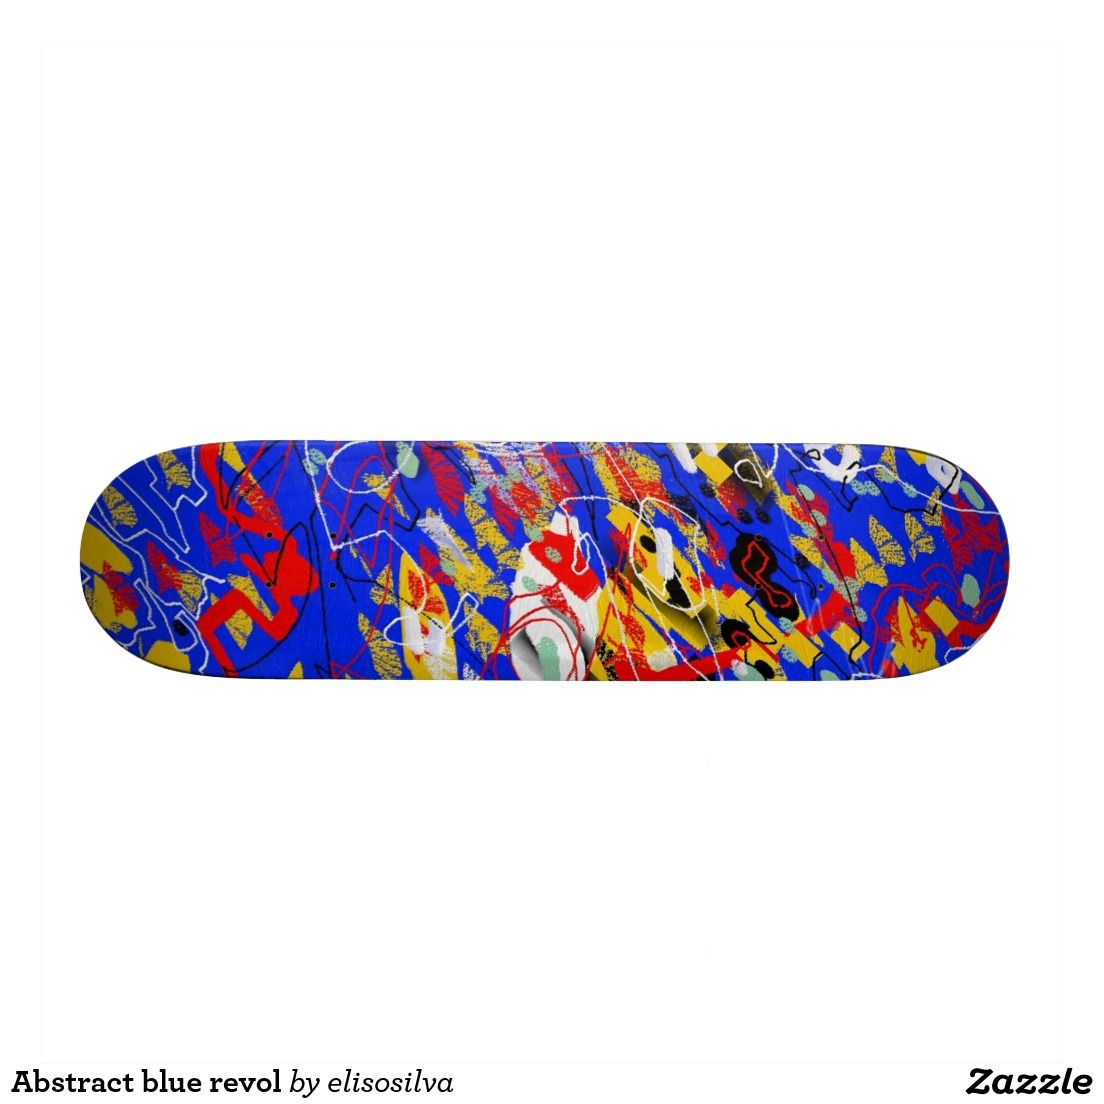 Abstract blue revol tablas de skate